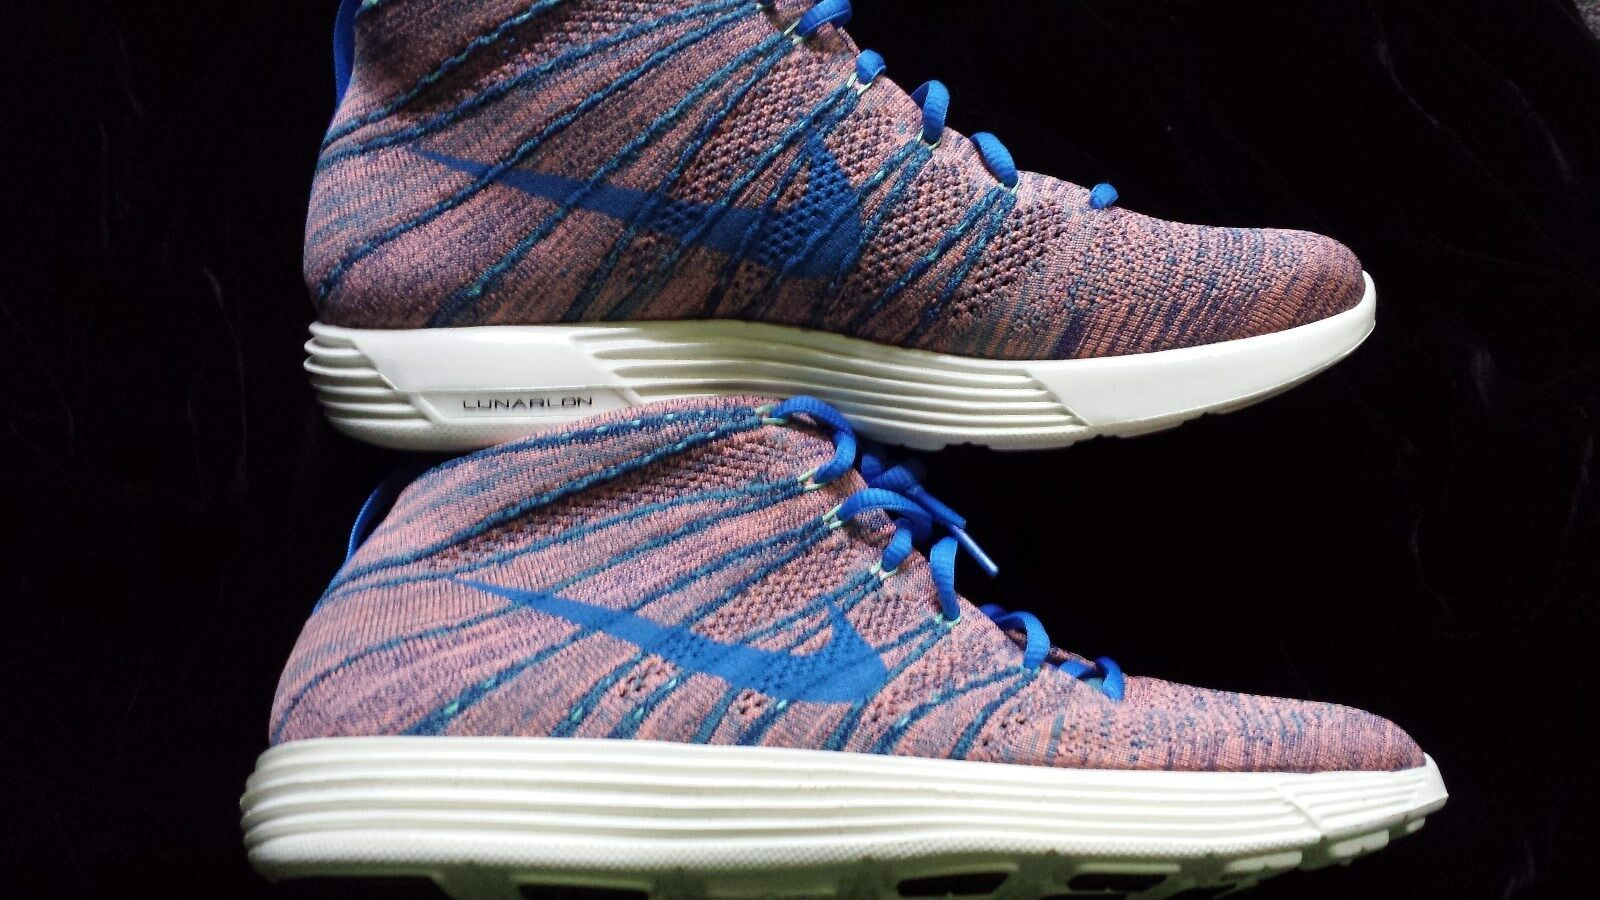 New NIKE MENS LUNAR FLYKNIT CHUKKA +  BRAVE BLUE MINERAL TEAL Size 10.5